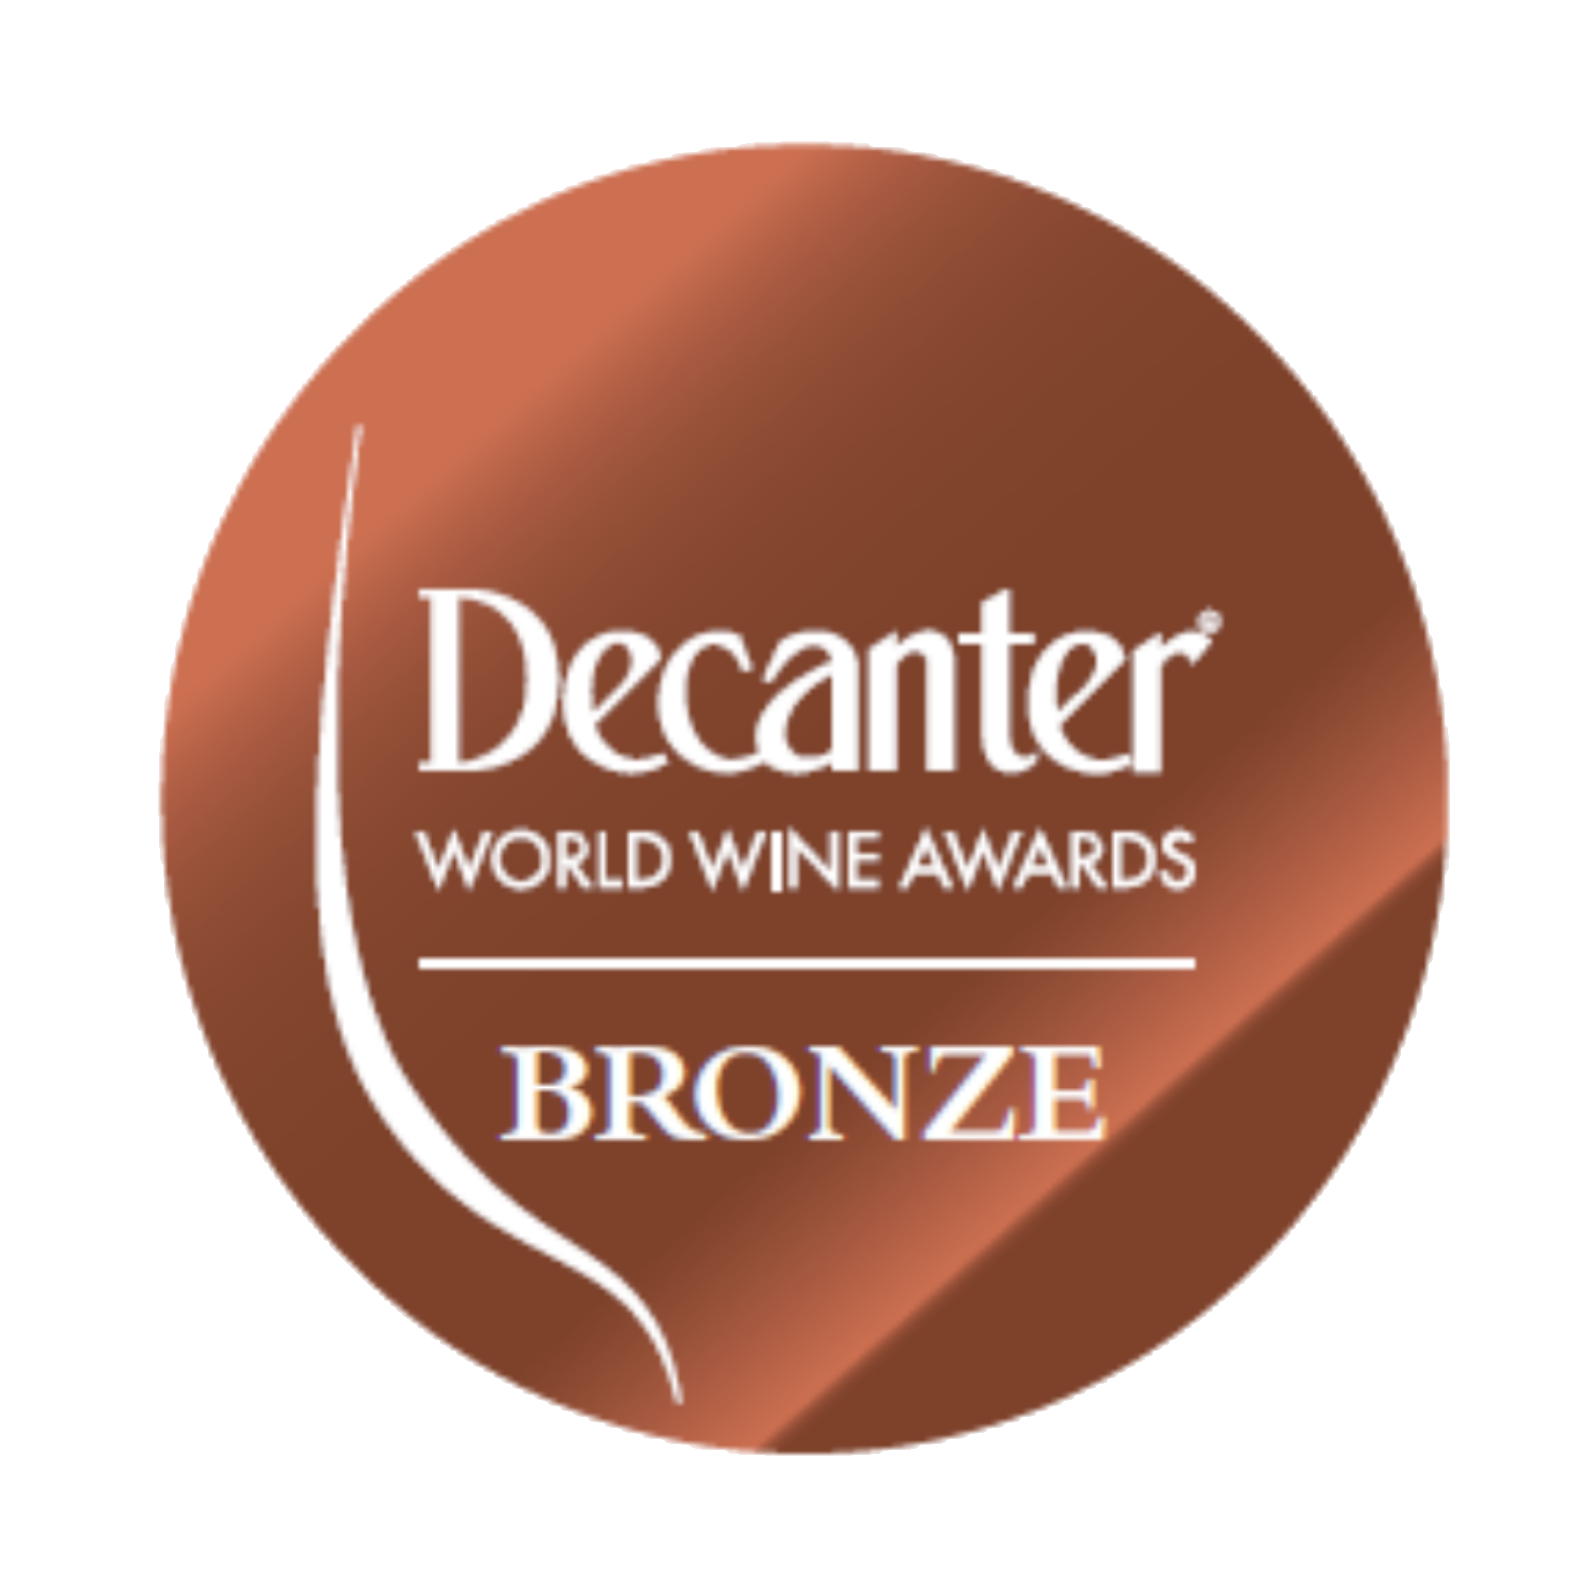 Decanter Bronze 2020